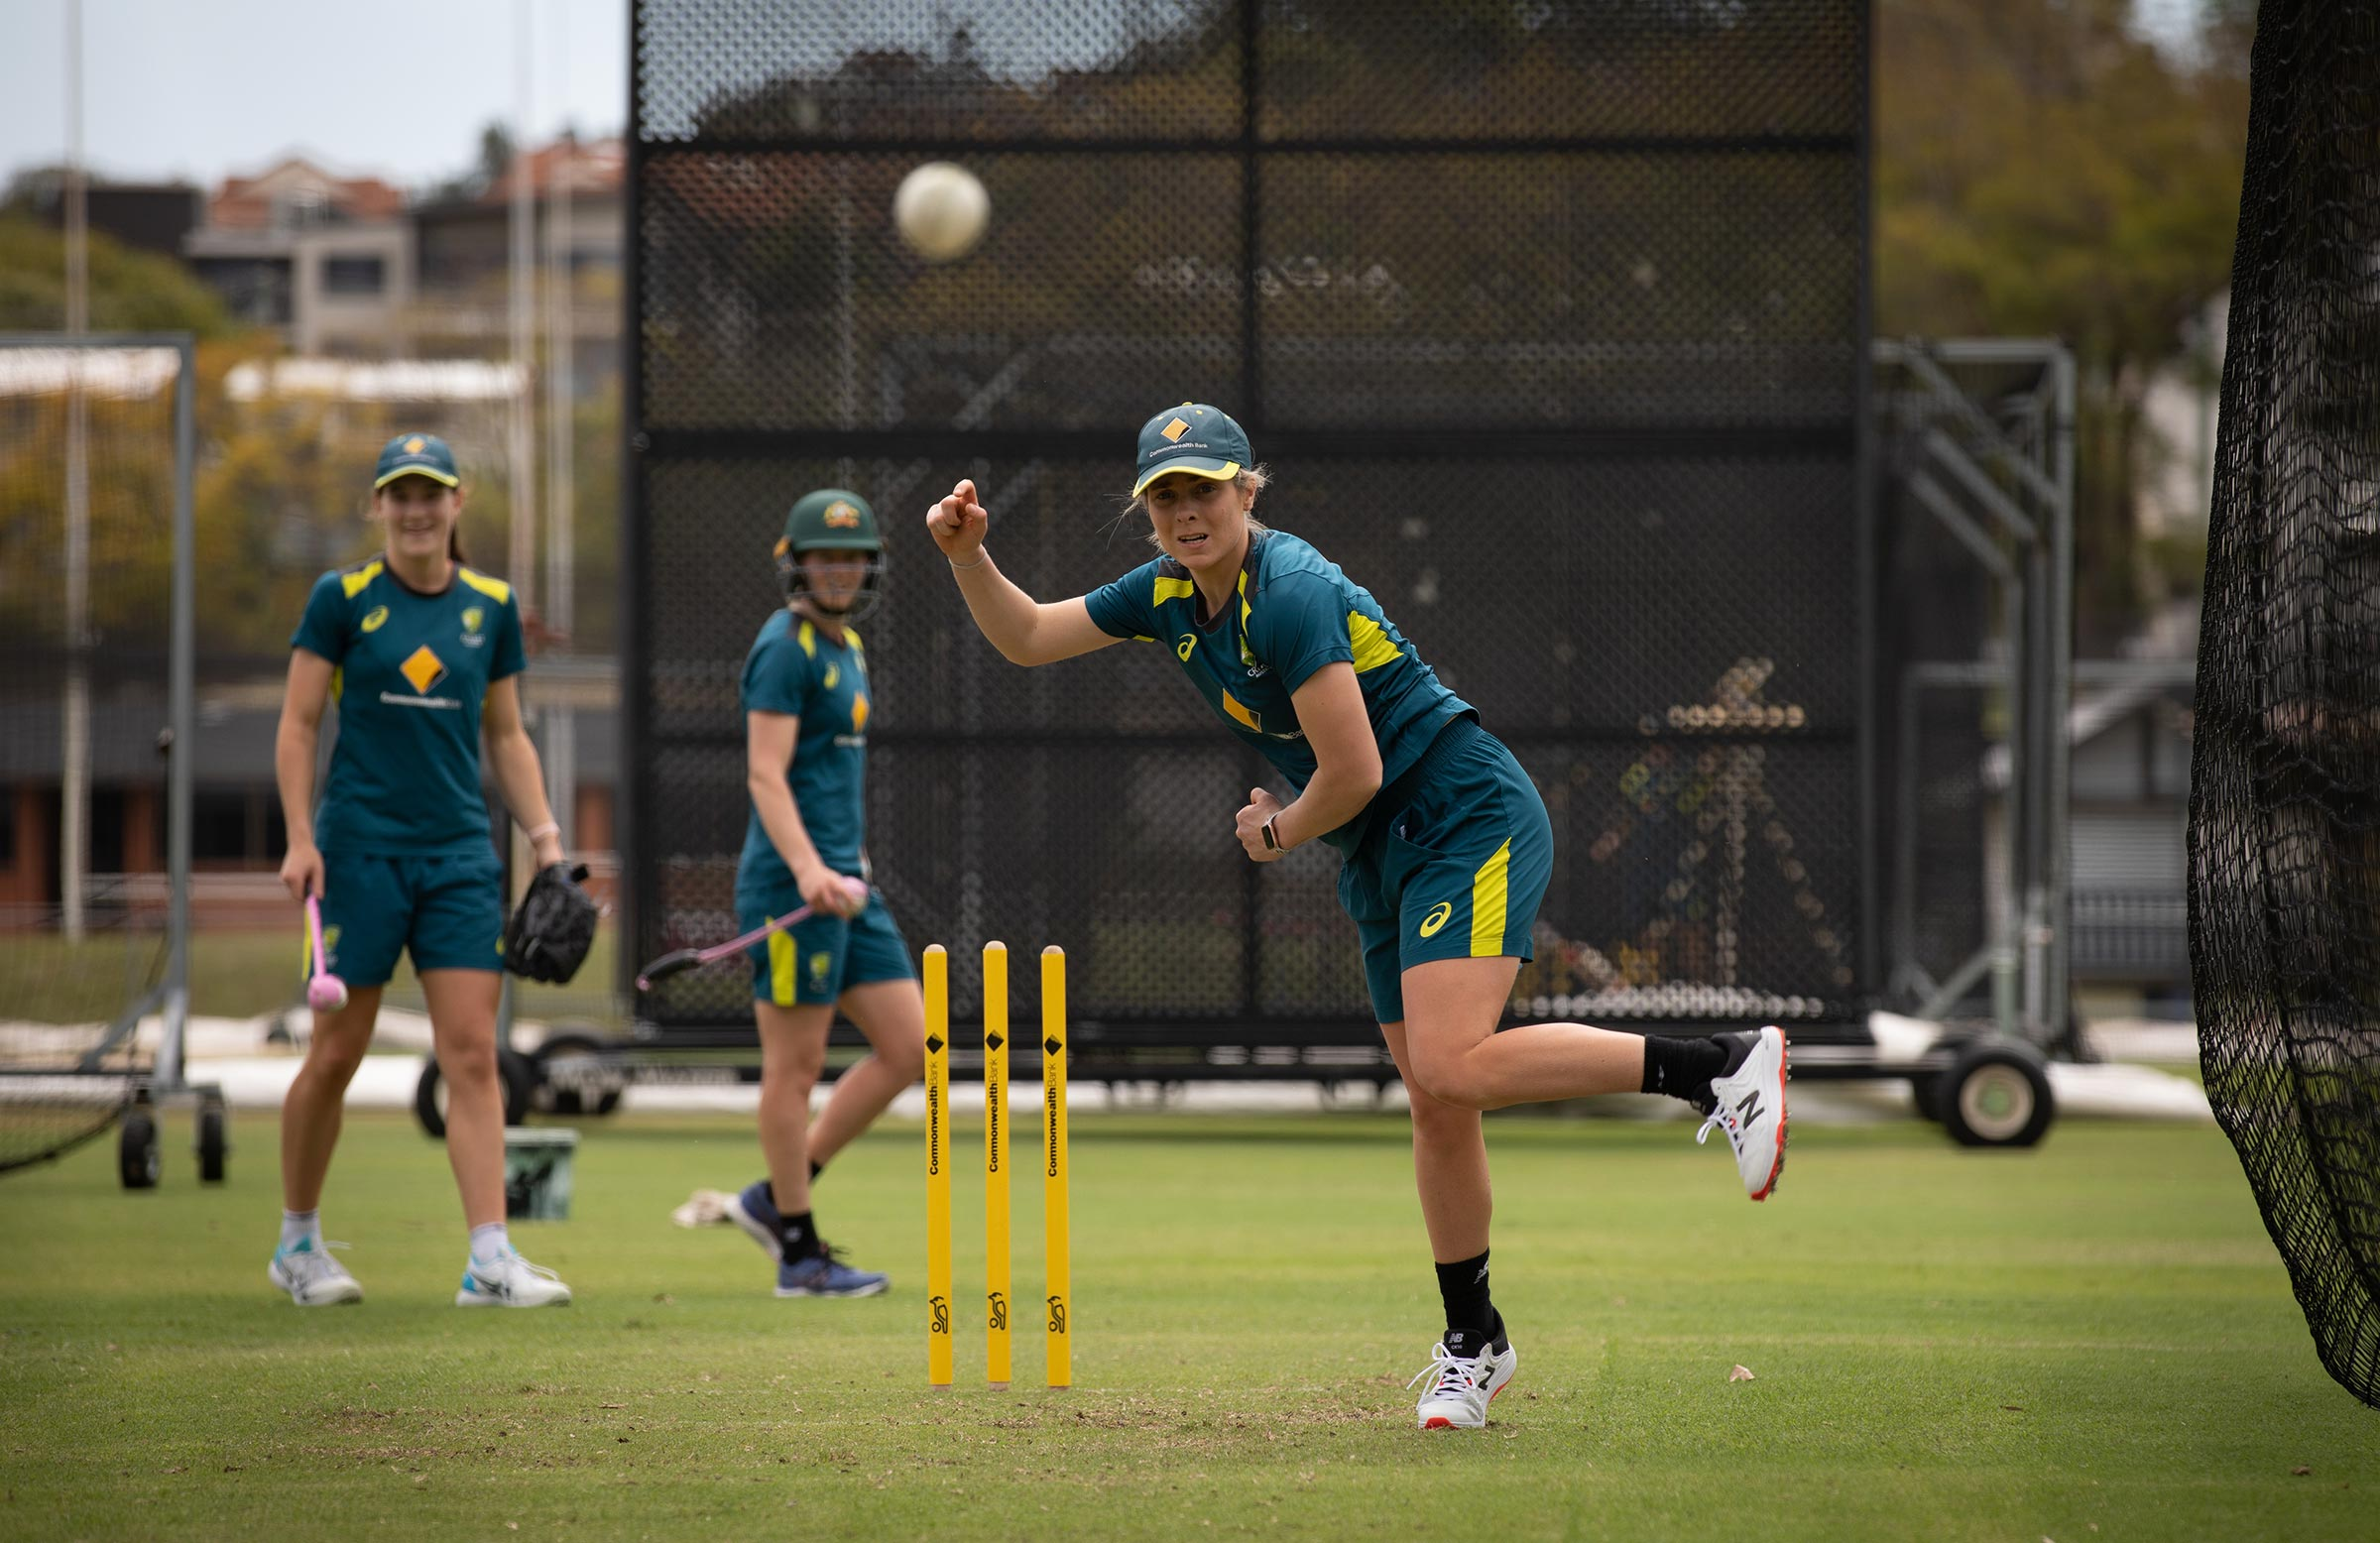 Molineux rolling the arm over at AB Field // cricket.com.au